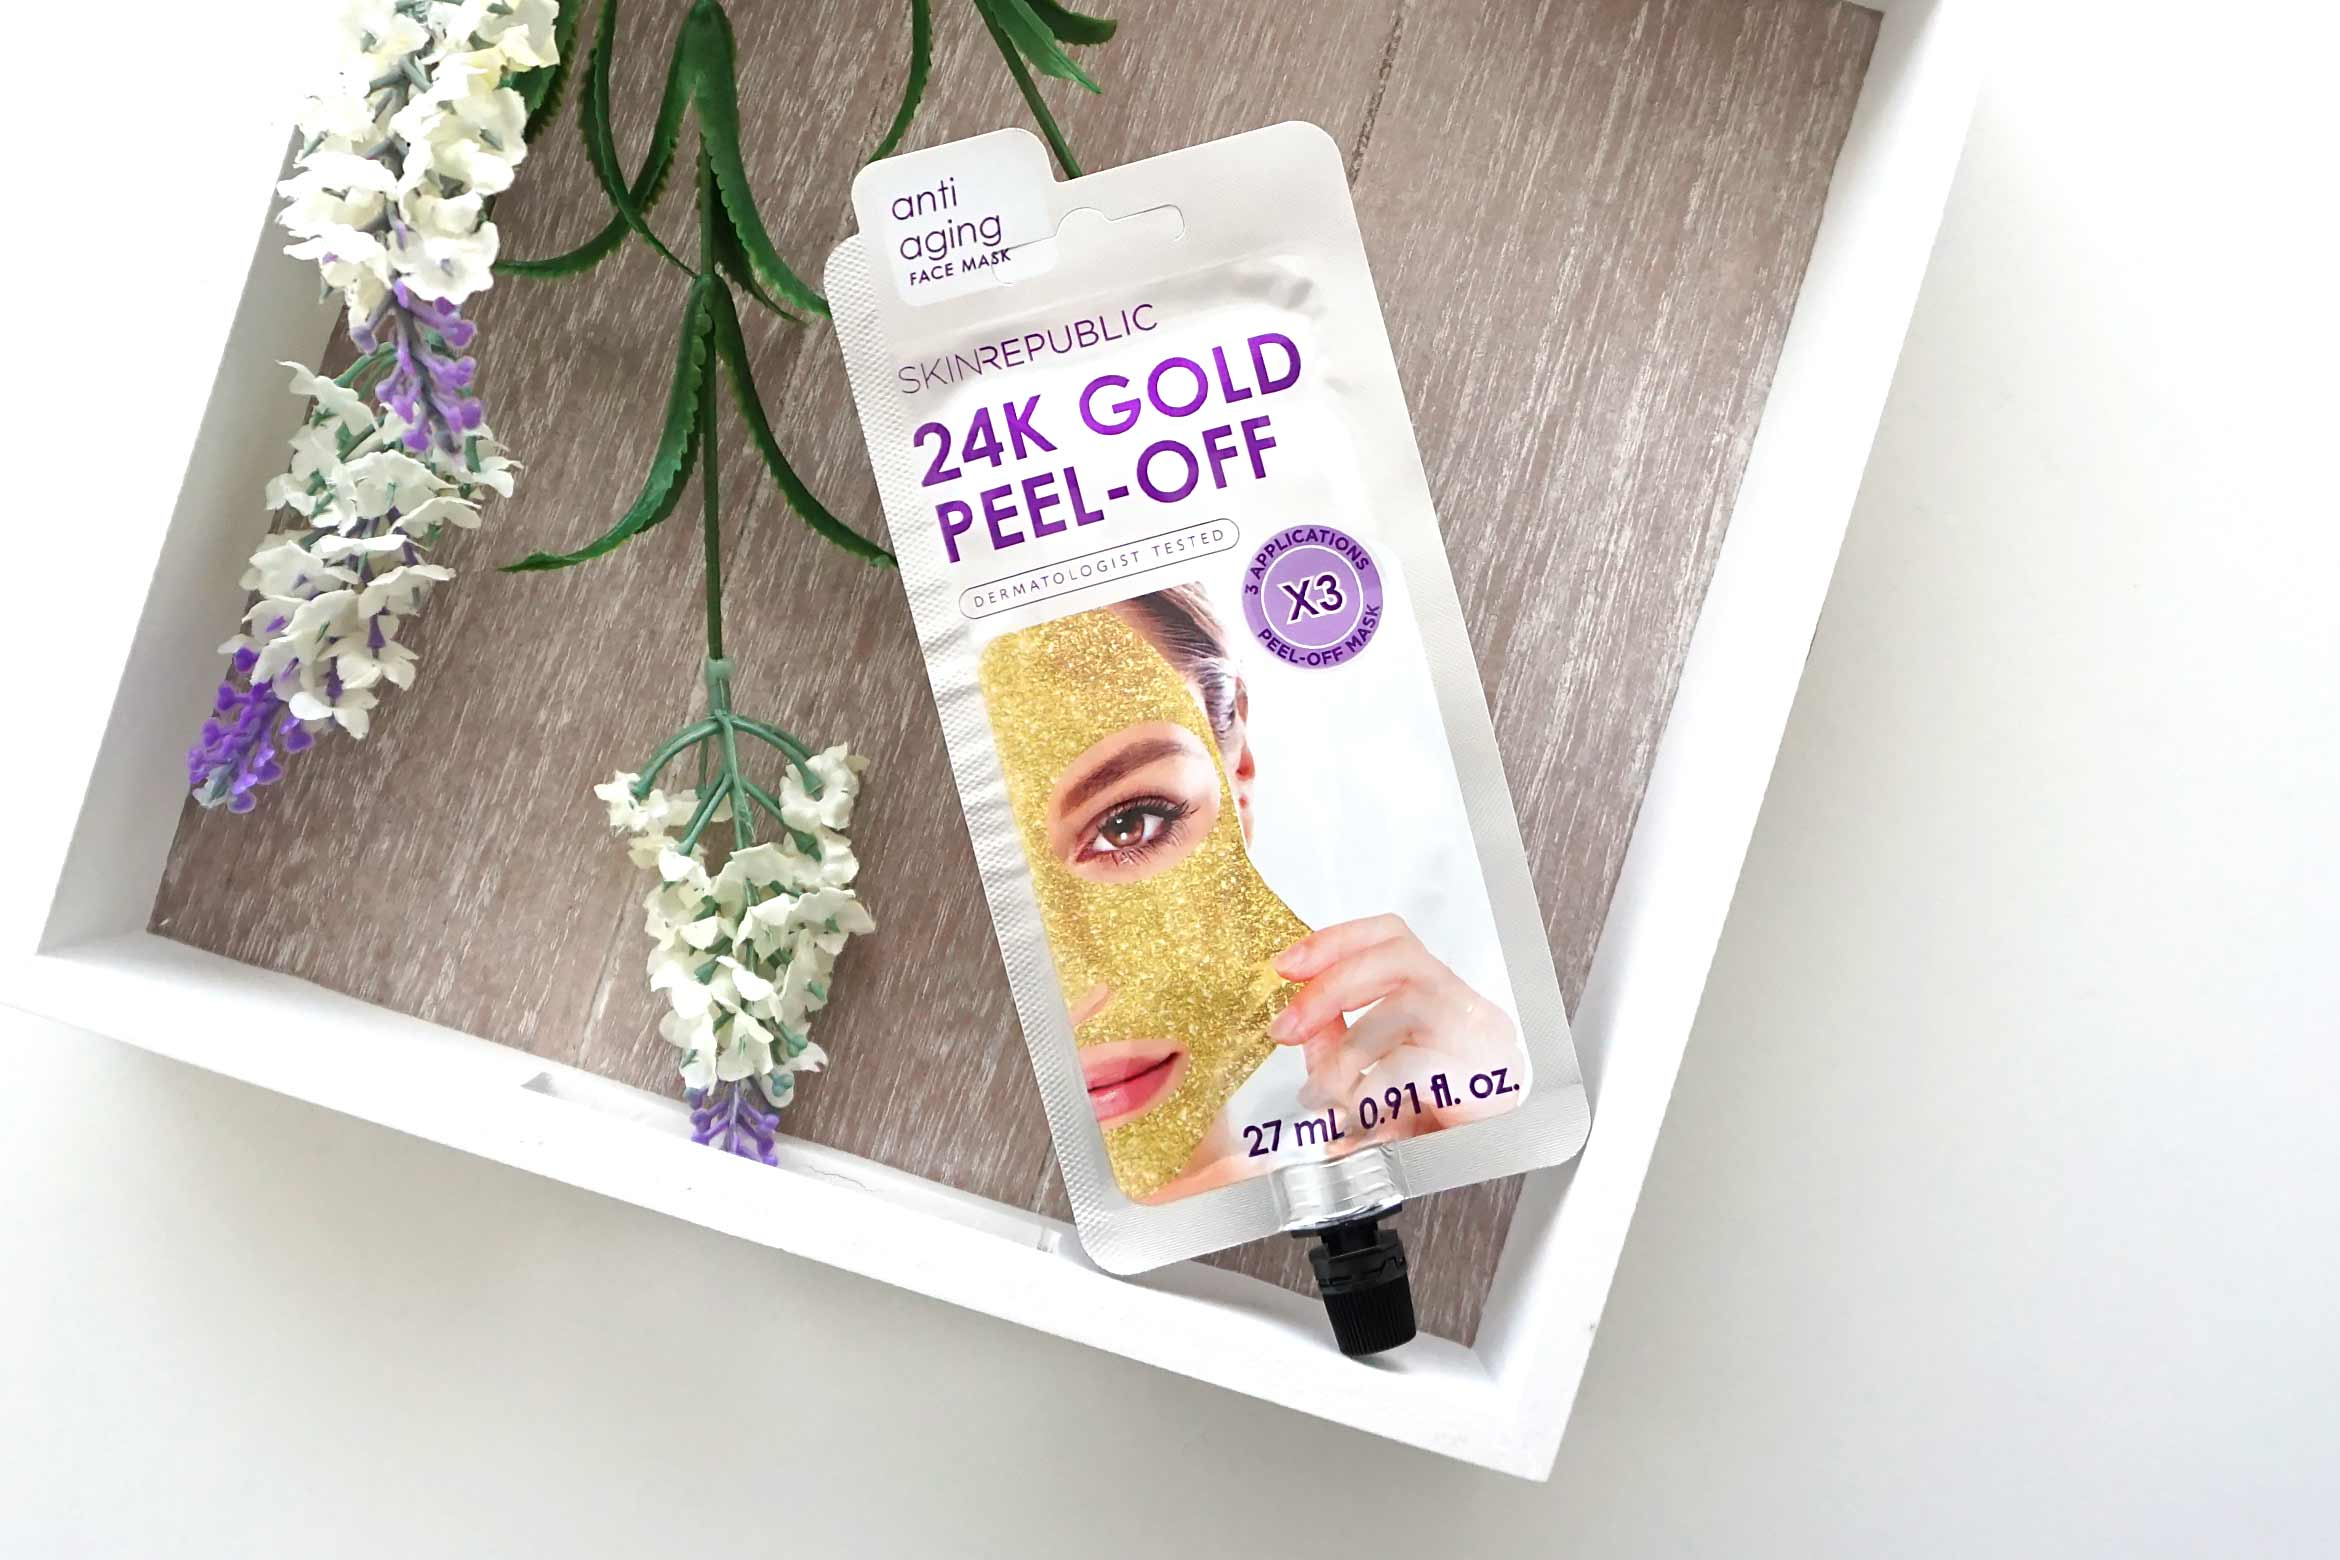 skin-republic-24k-gold-peel-off-mask-review